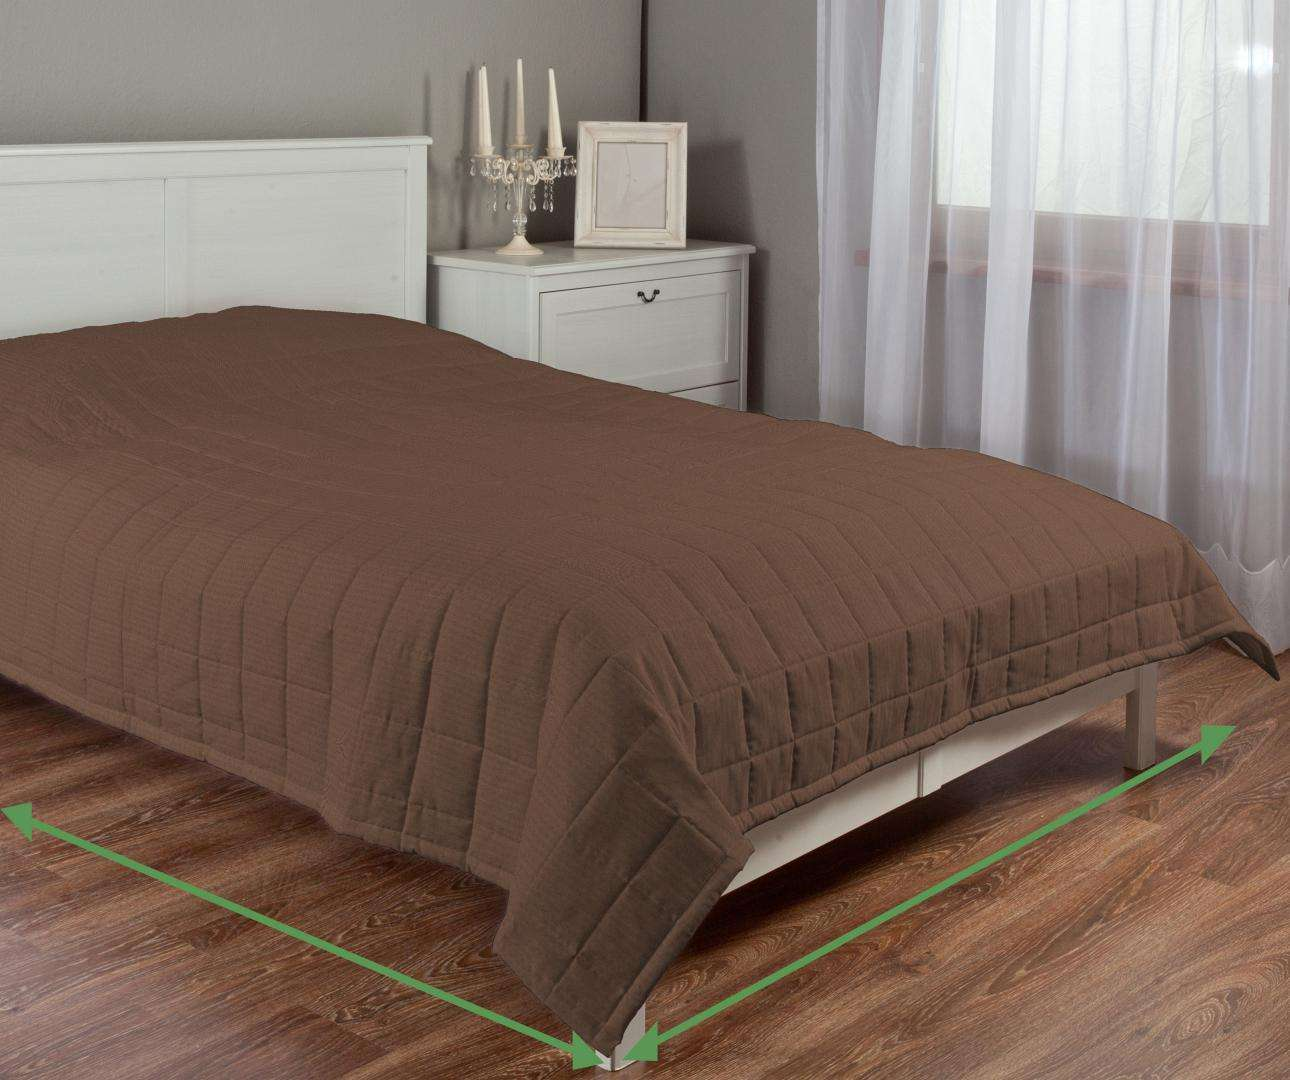 Quilted throw (check quilt pattern) in collection Milano, fabric: 150-21